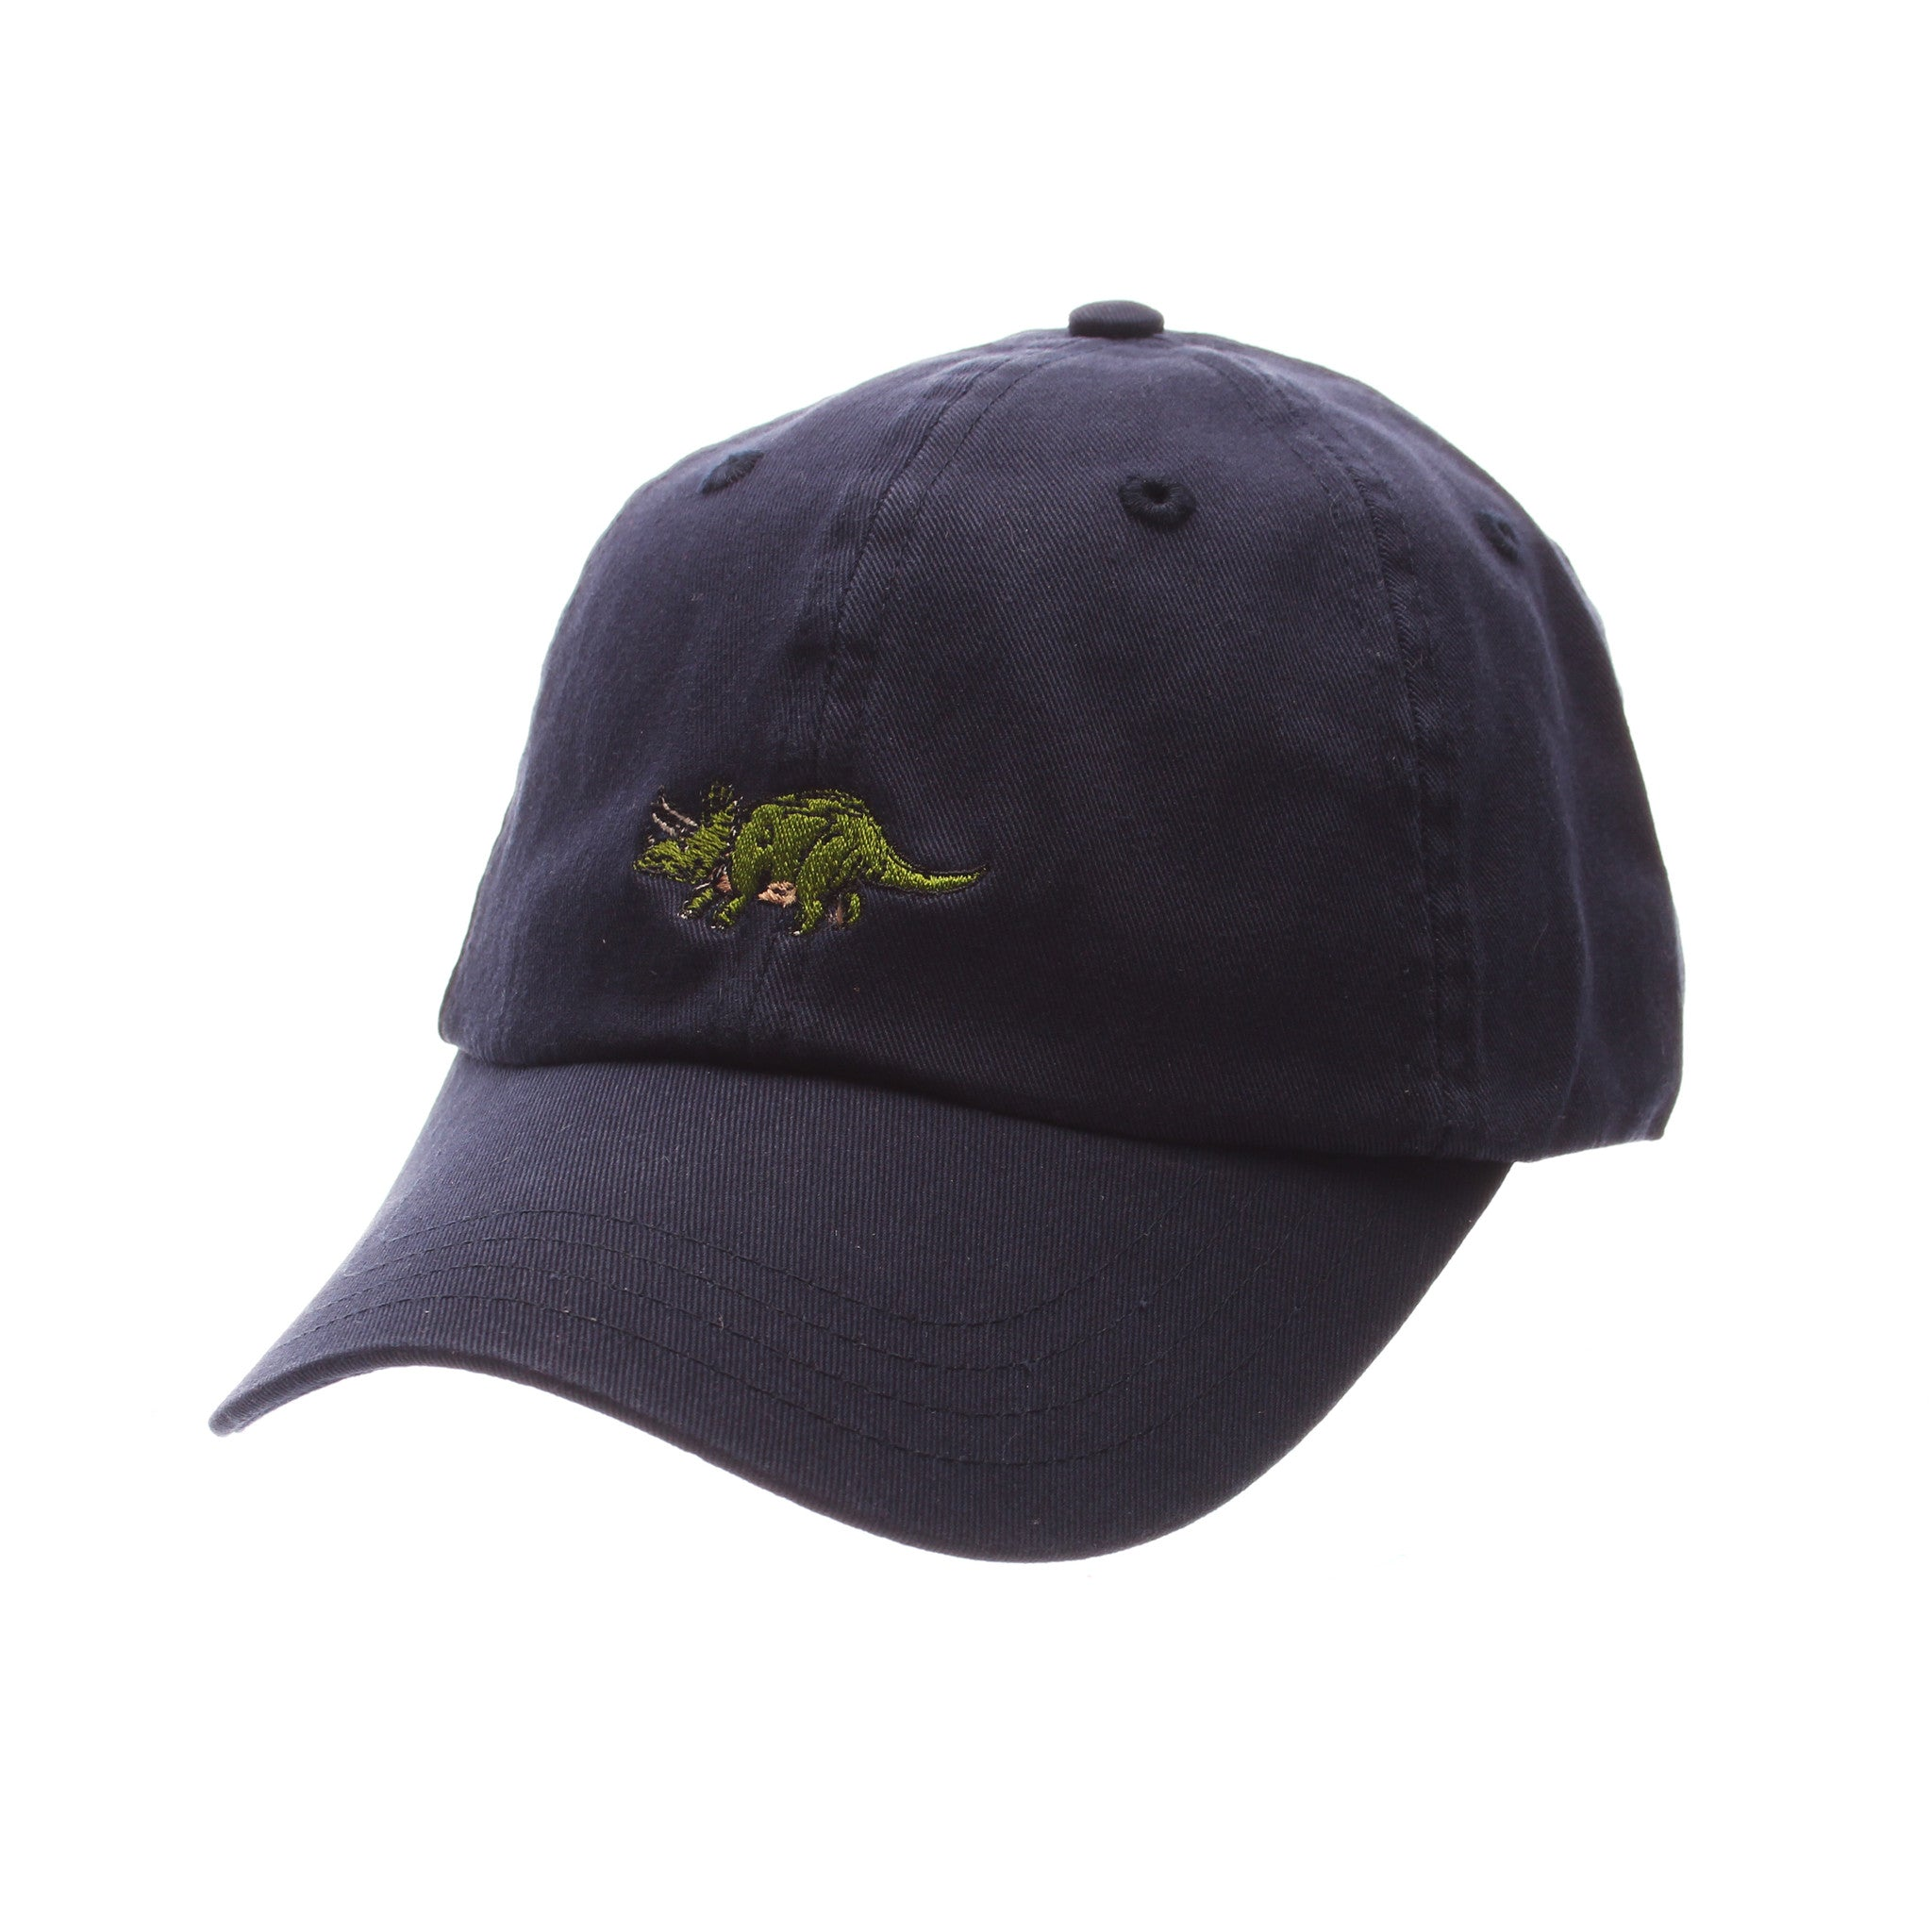 Dad Hat (TRICERATOPS) Navy Dark Washed Adjustable hats by Zephyr